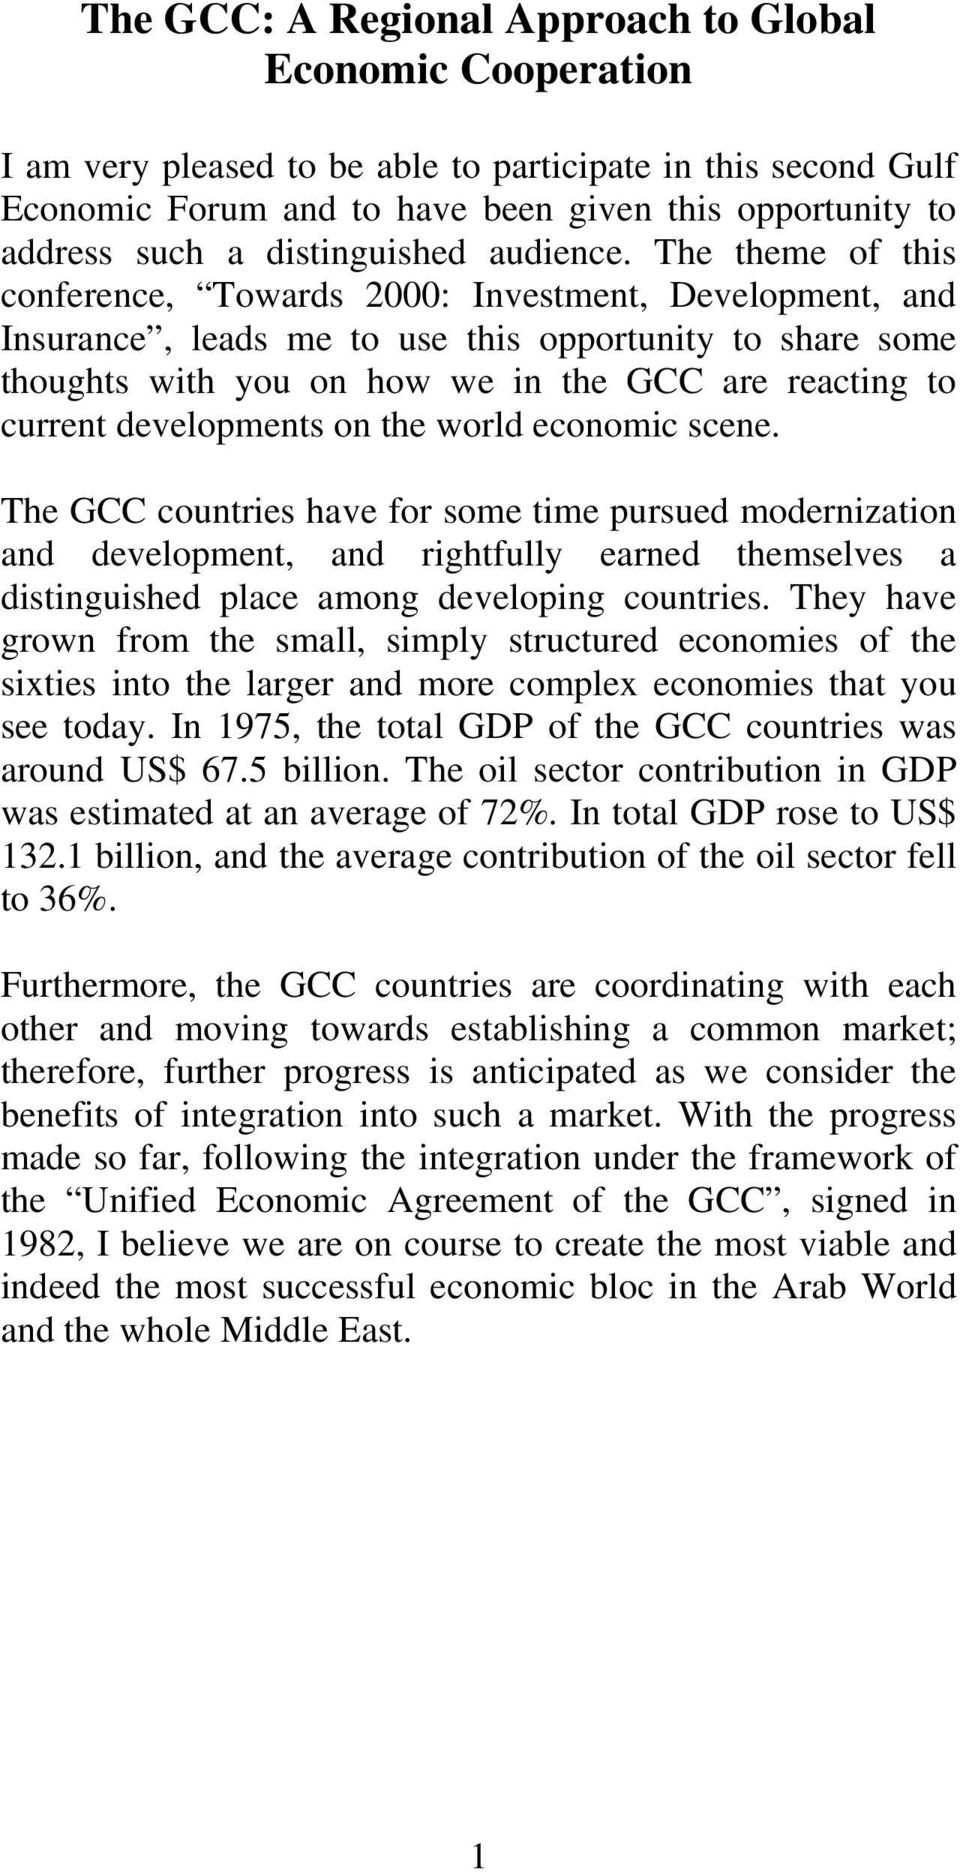 The theme of this conference, Towards 2000: Investment, Development, and Insurance, leads me to use this opportunity to share some thoughts with you on how we in the GCC are reacting to current